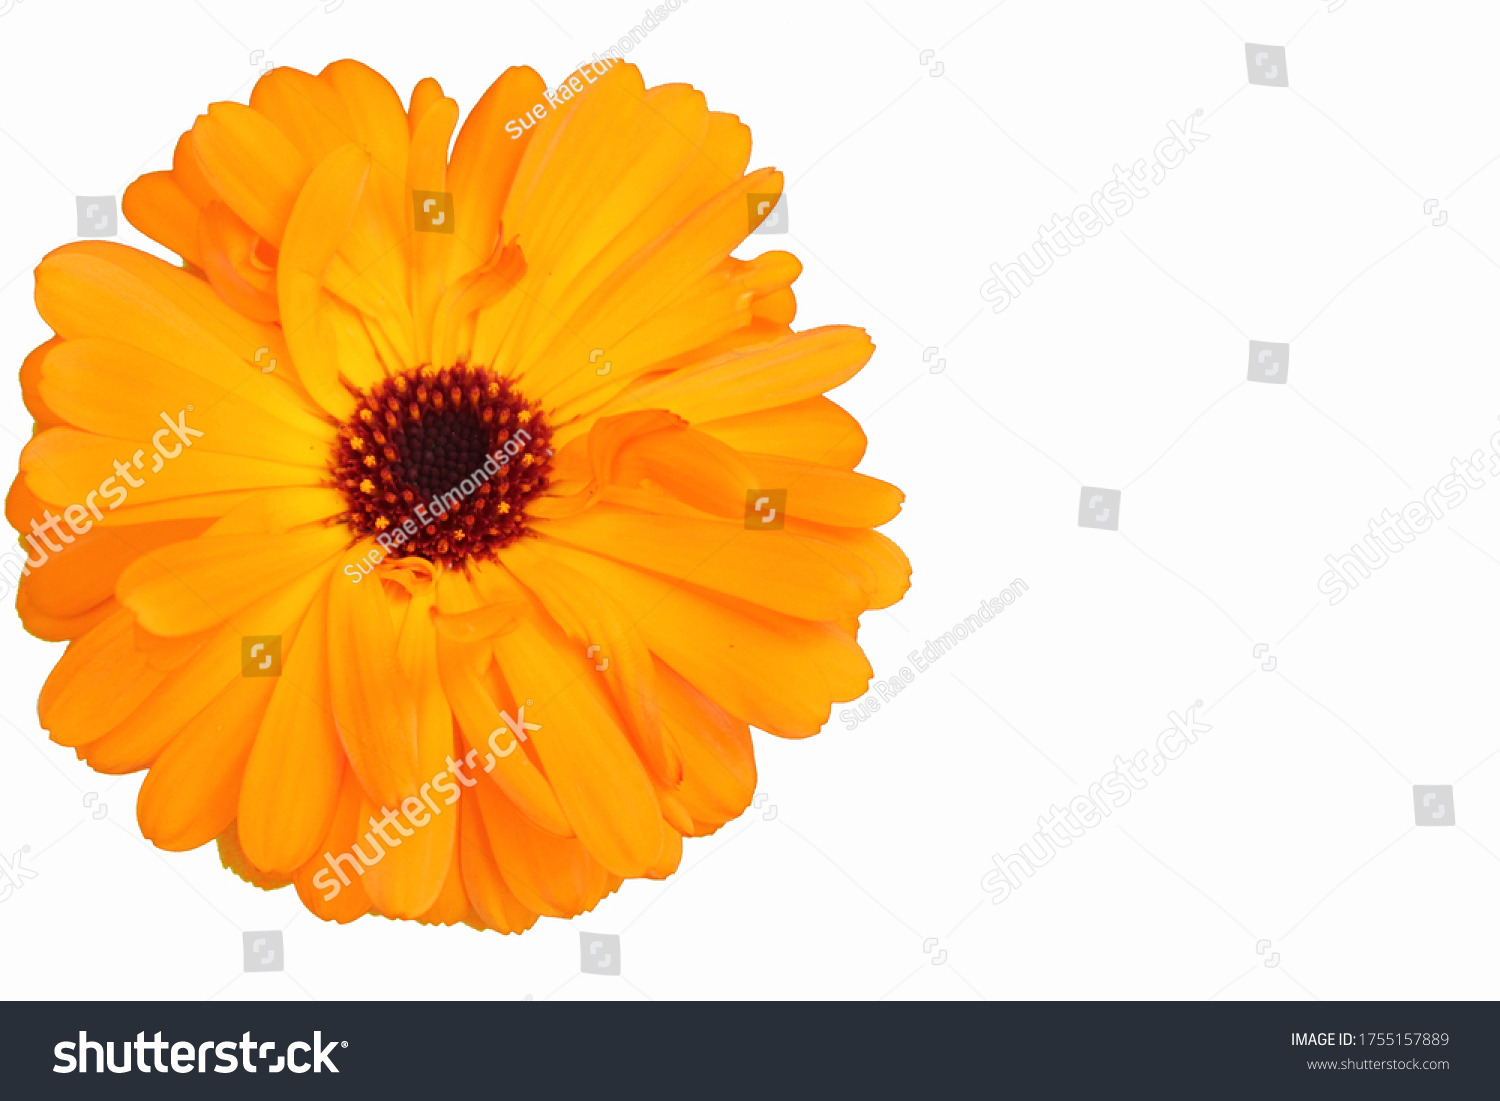 stock-photo-marigold-flower-head-calendu